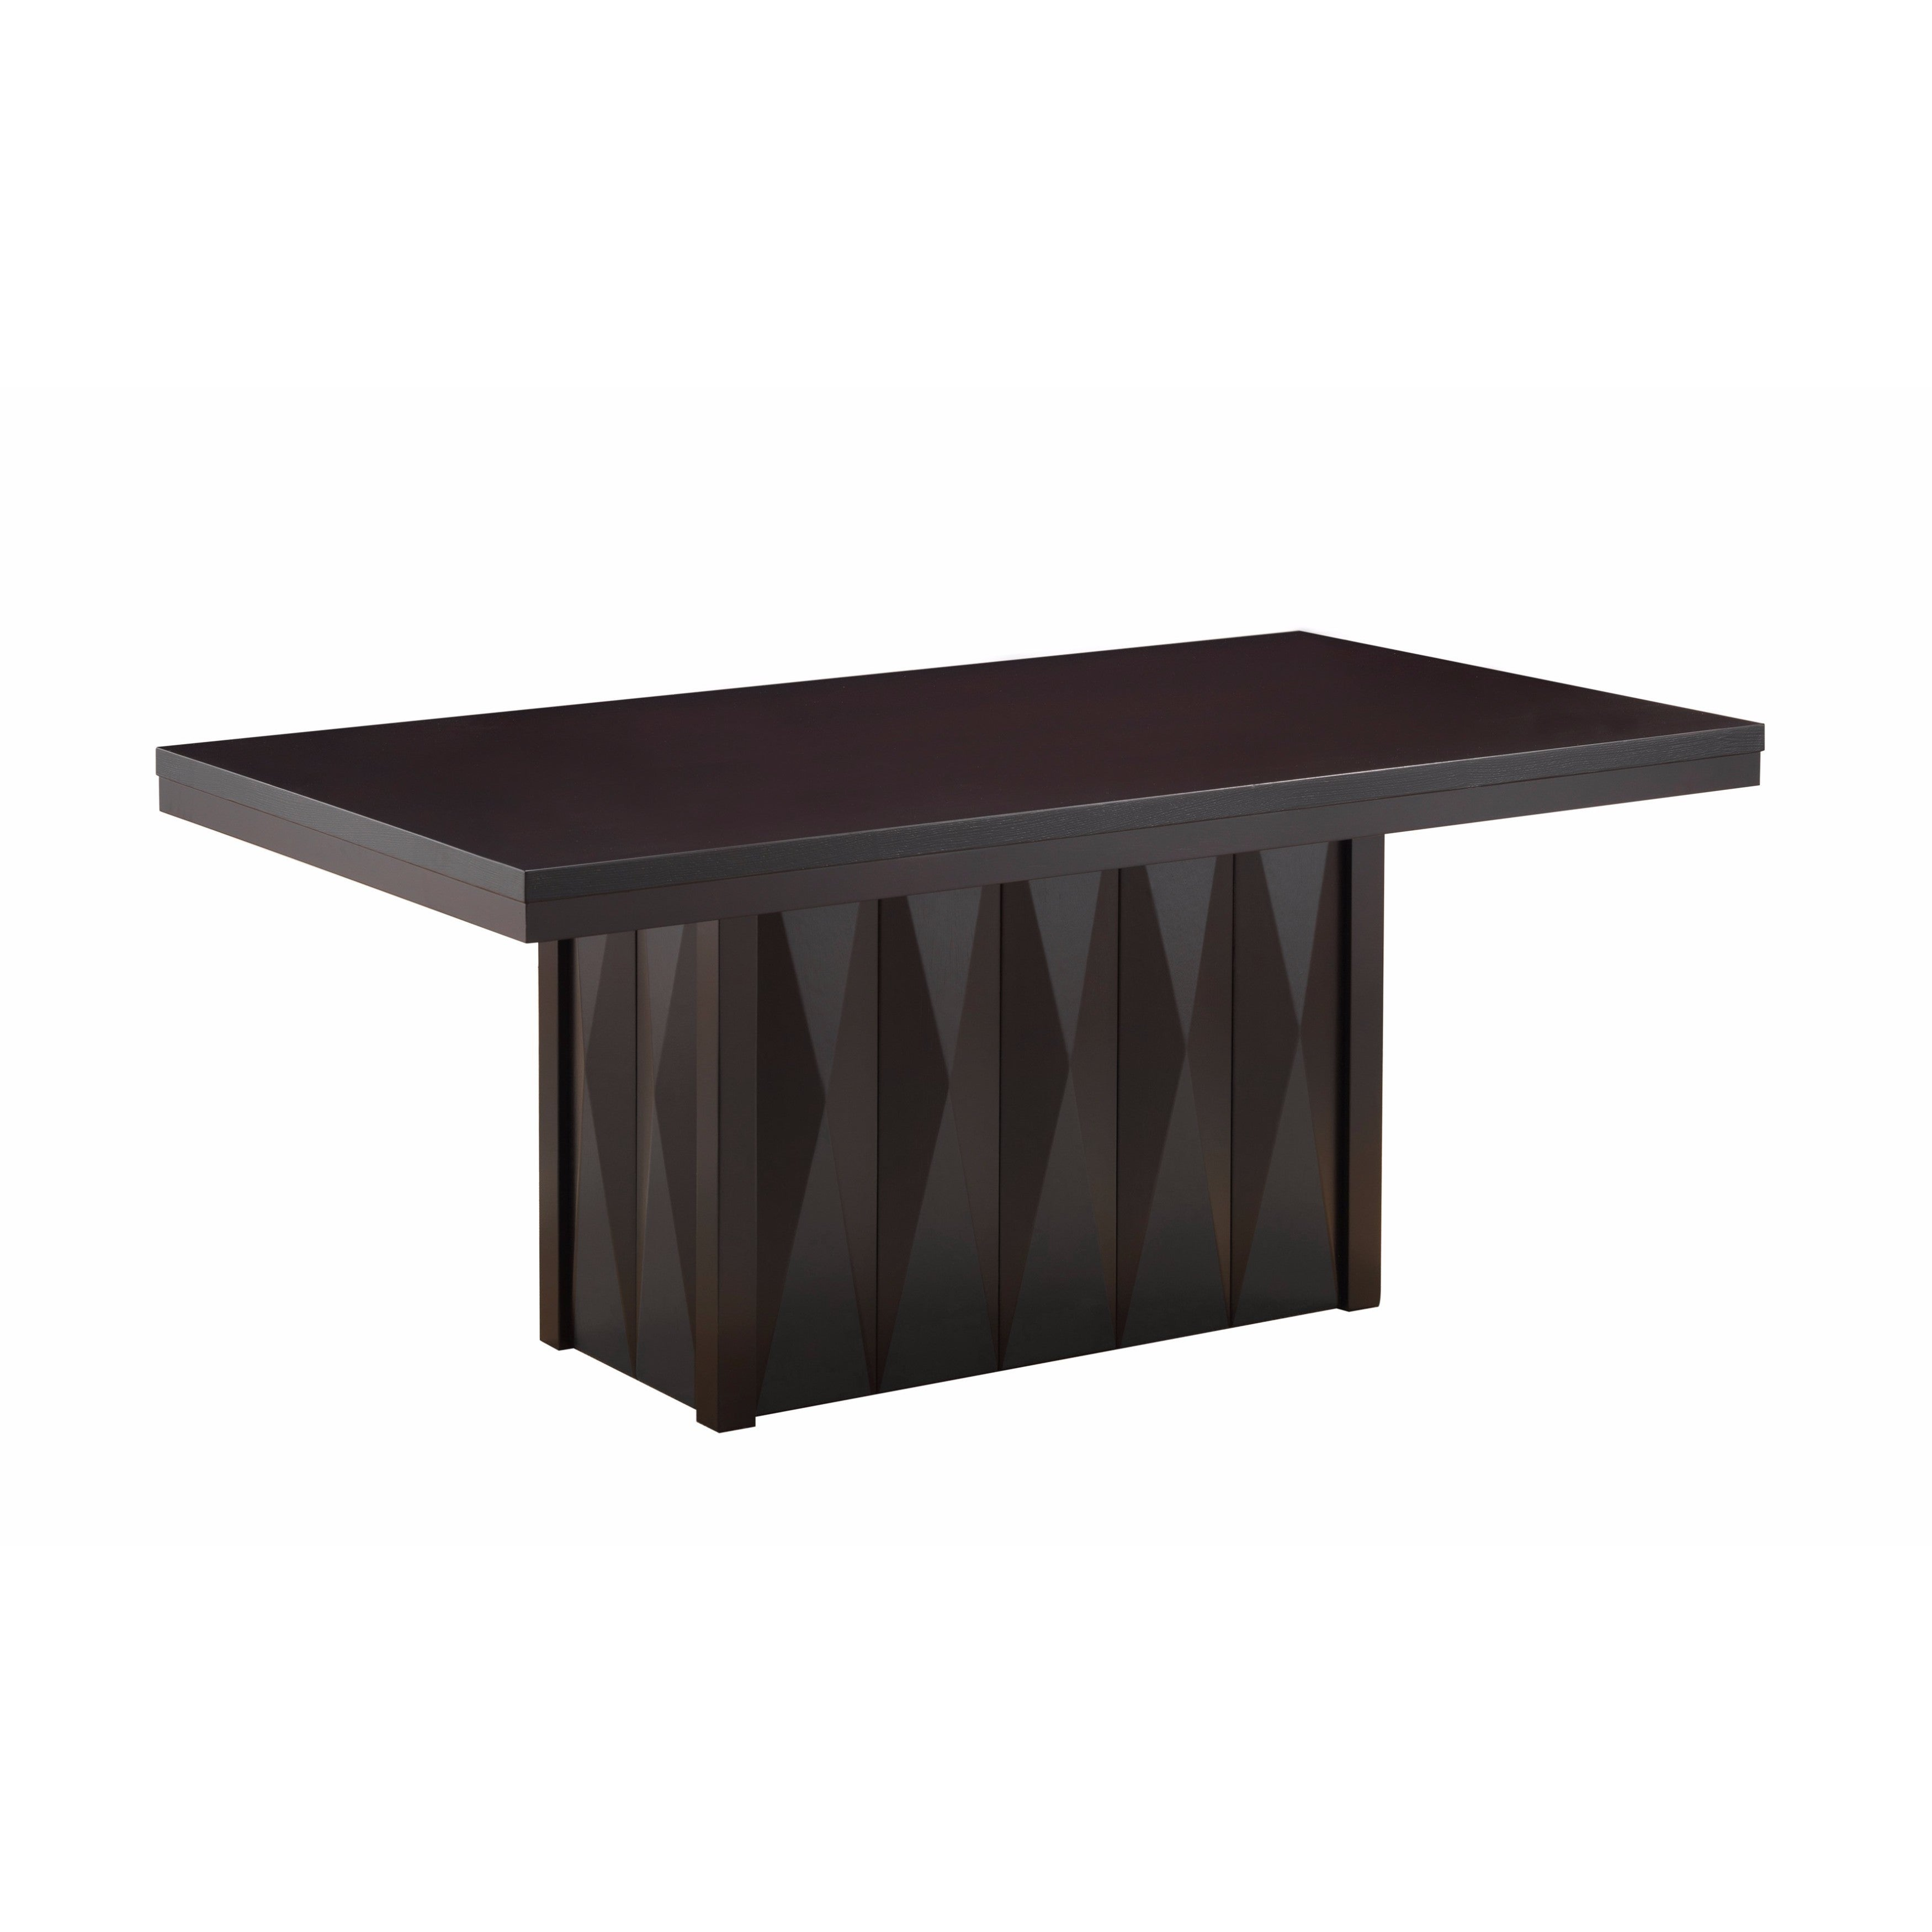 Picture of: Modern Dinette Cappuccino Wood Rectangular Dining Room Table Overstock 15050445